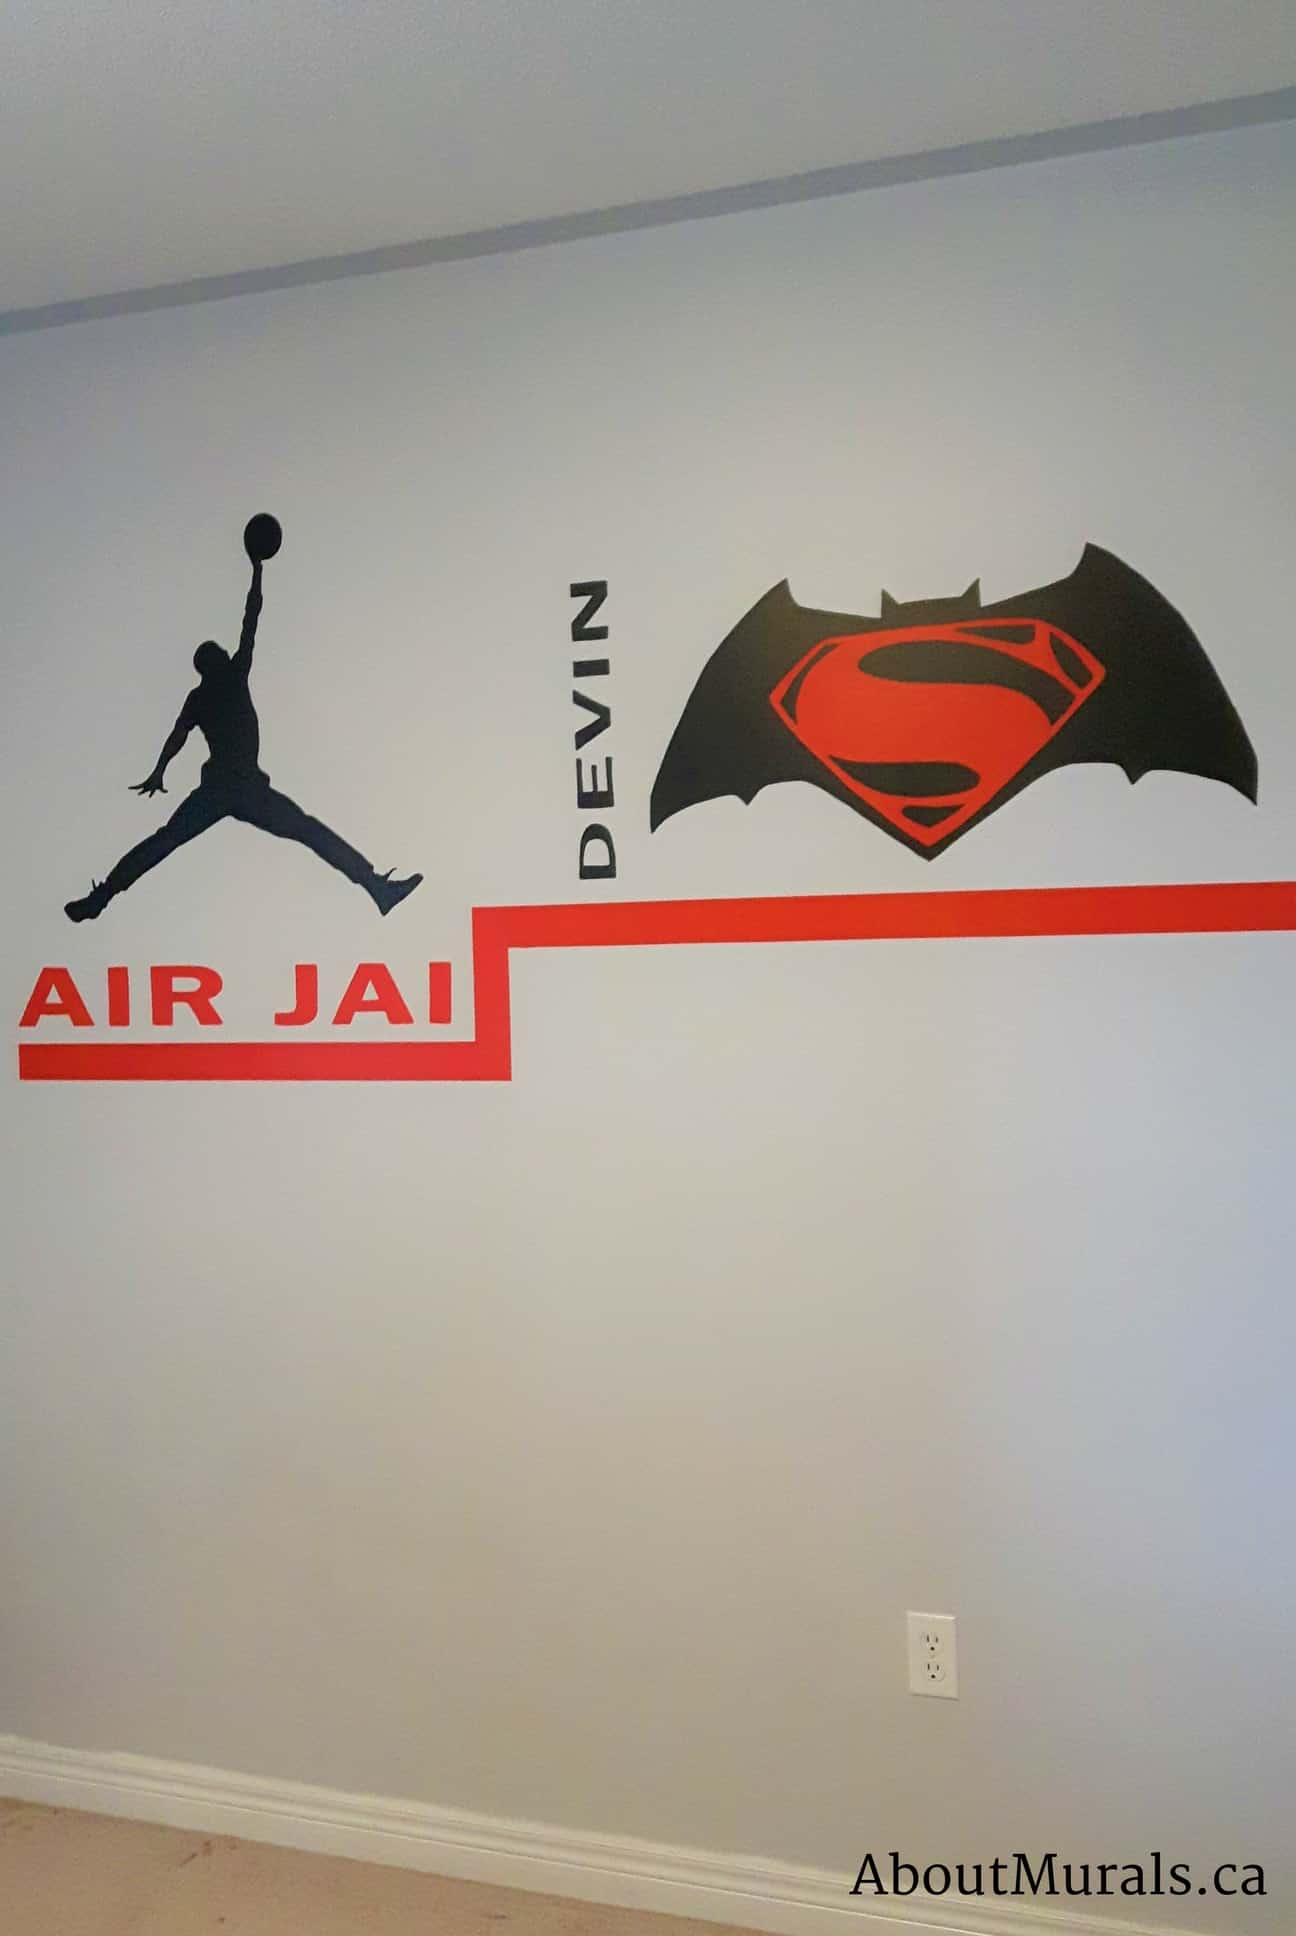 A kids wall mural featuring a personalized Air Jordan logo and Batman versus Superman logo